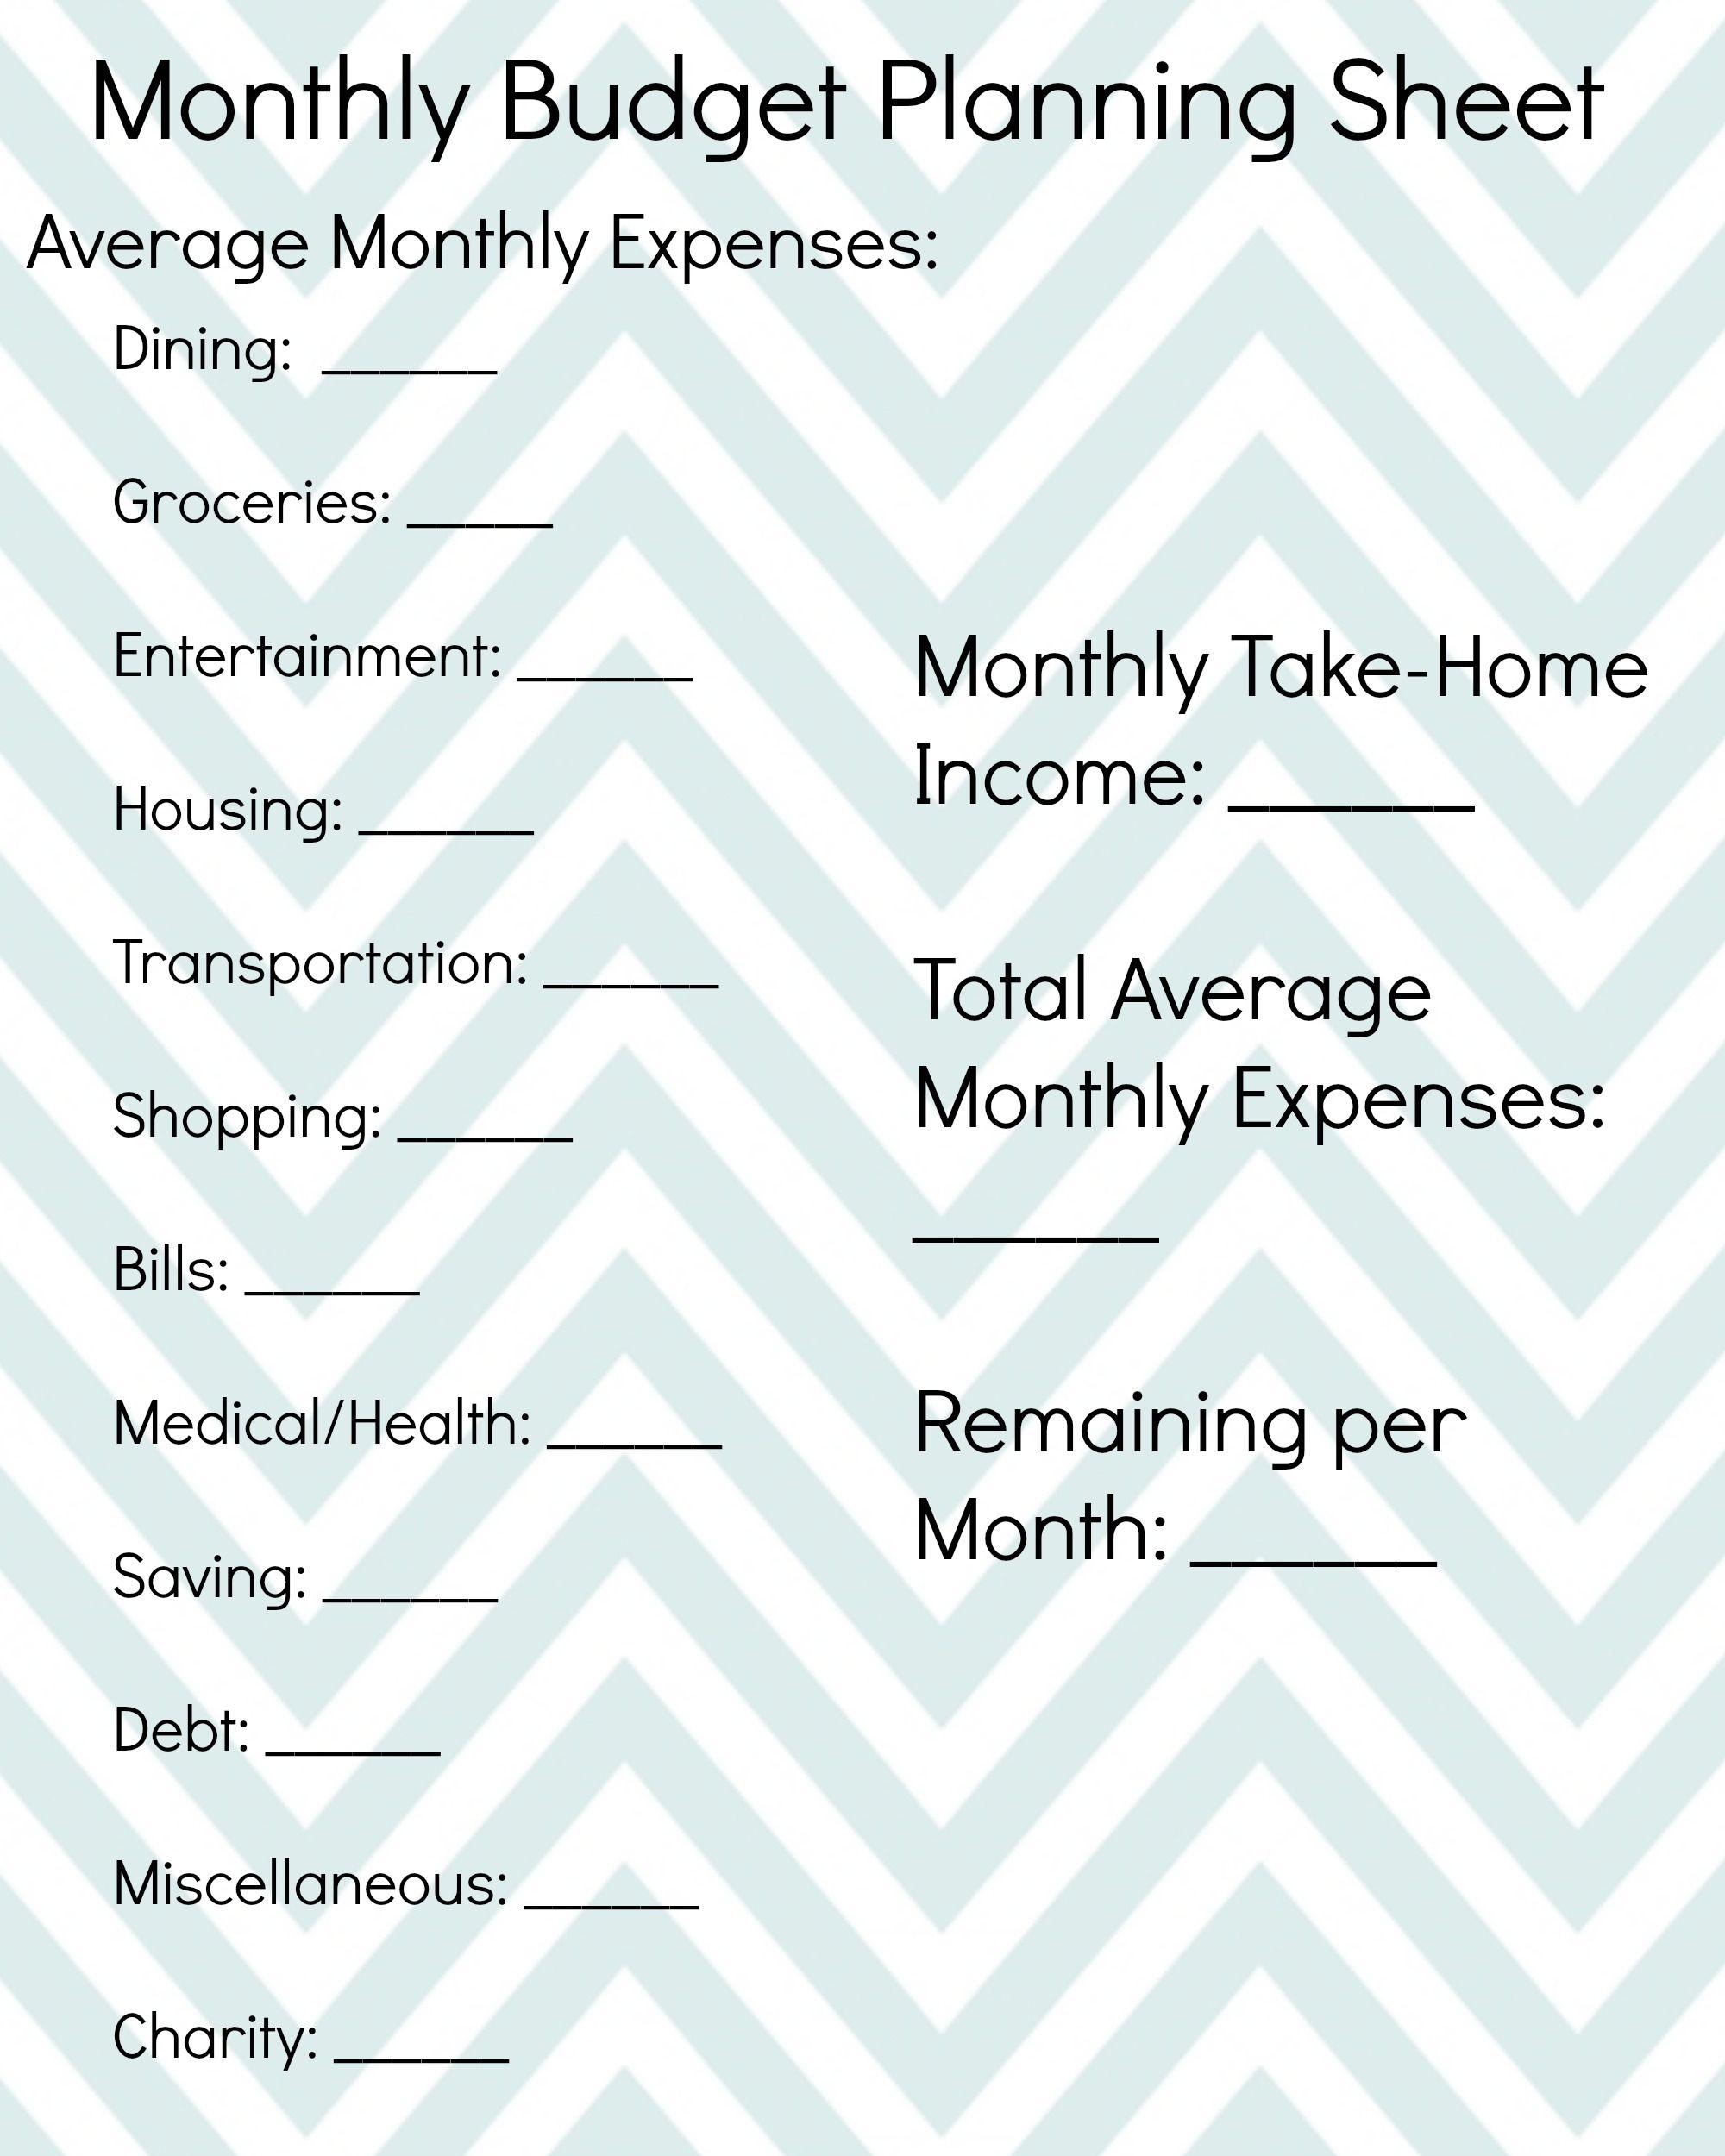 Financial freedom friday how to start planning a budget financial freedom friday how to start planning a budget imperfectly polished robcynllc Image collections